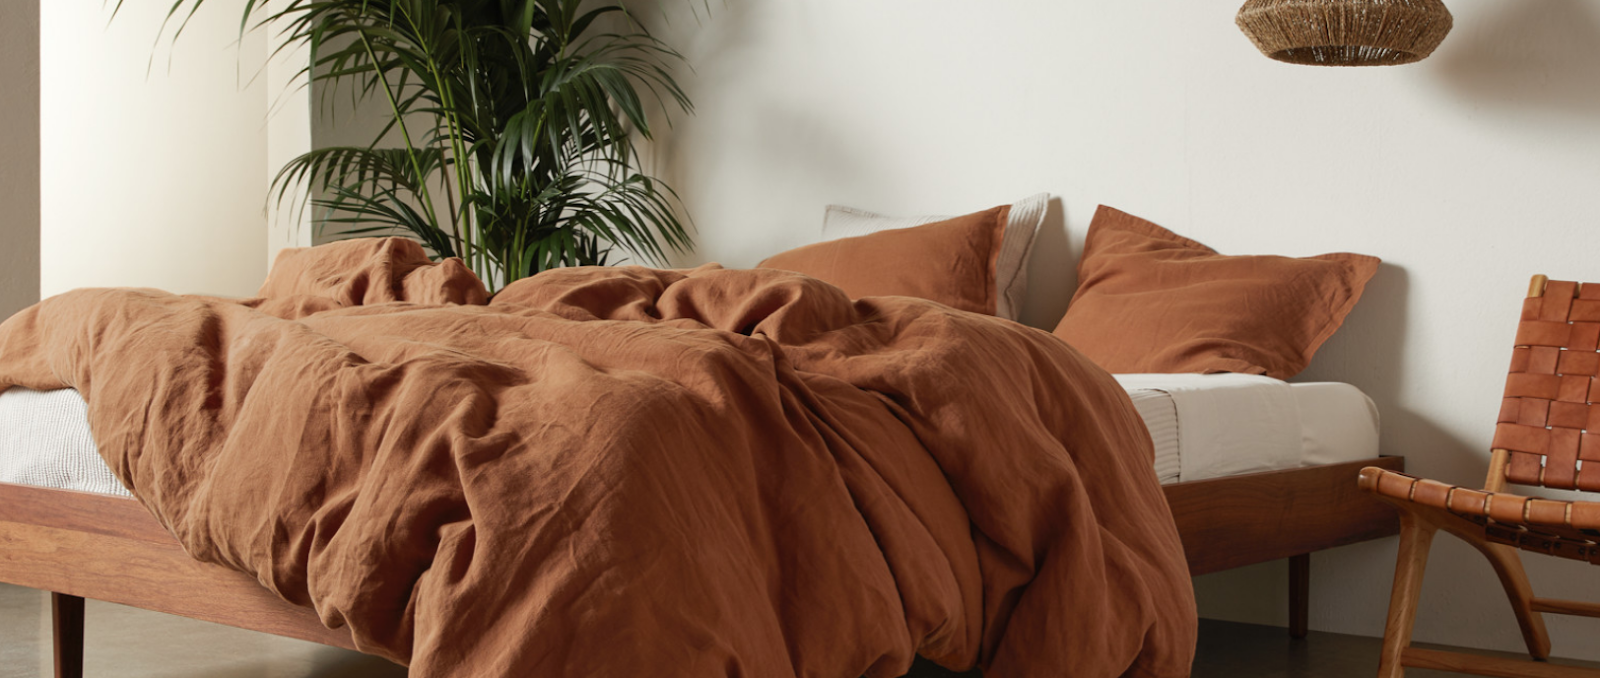 Parachute vs Brooklinen Bedding Review 6